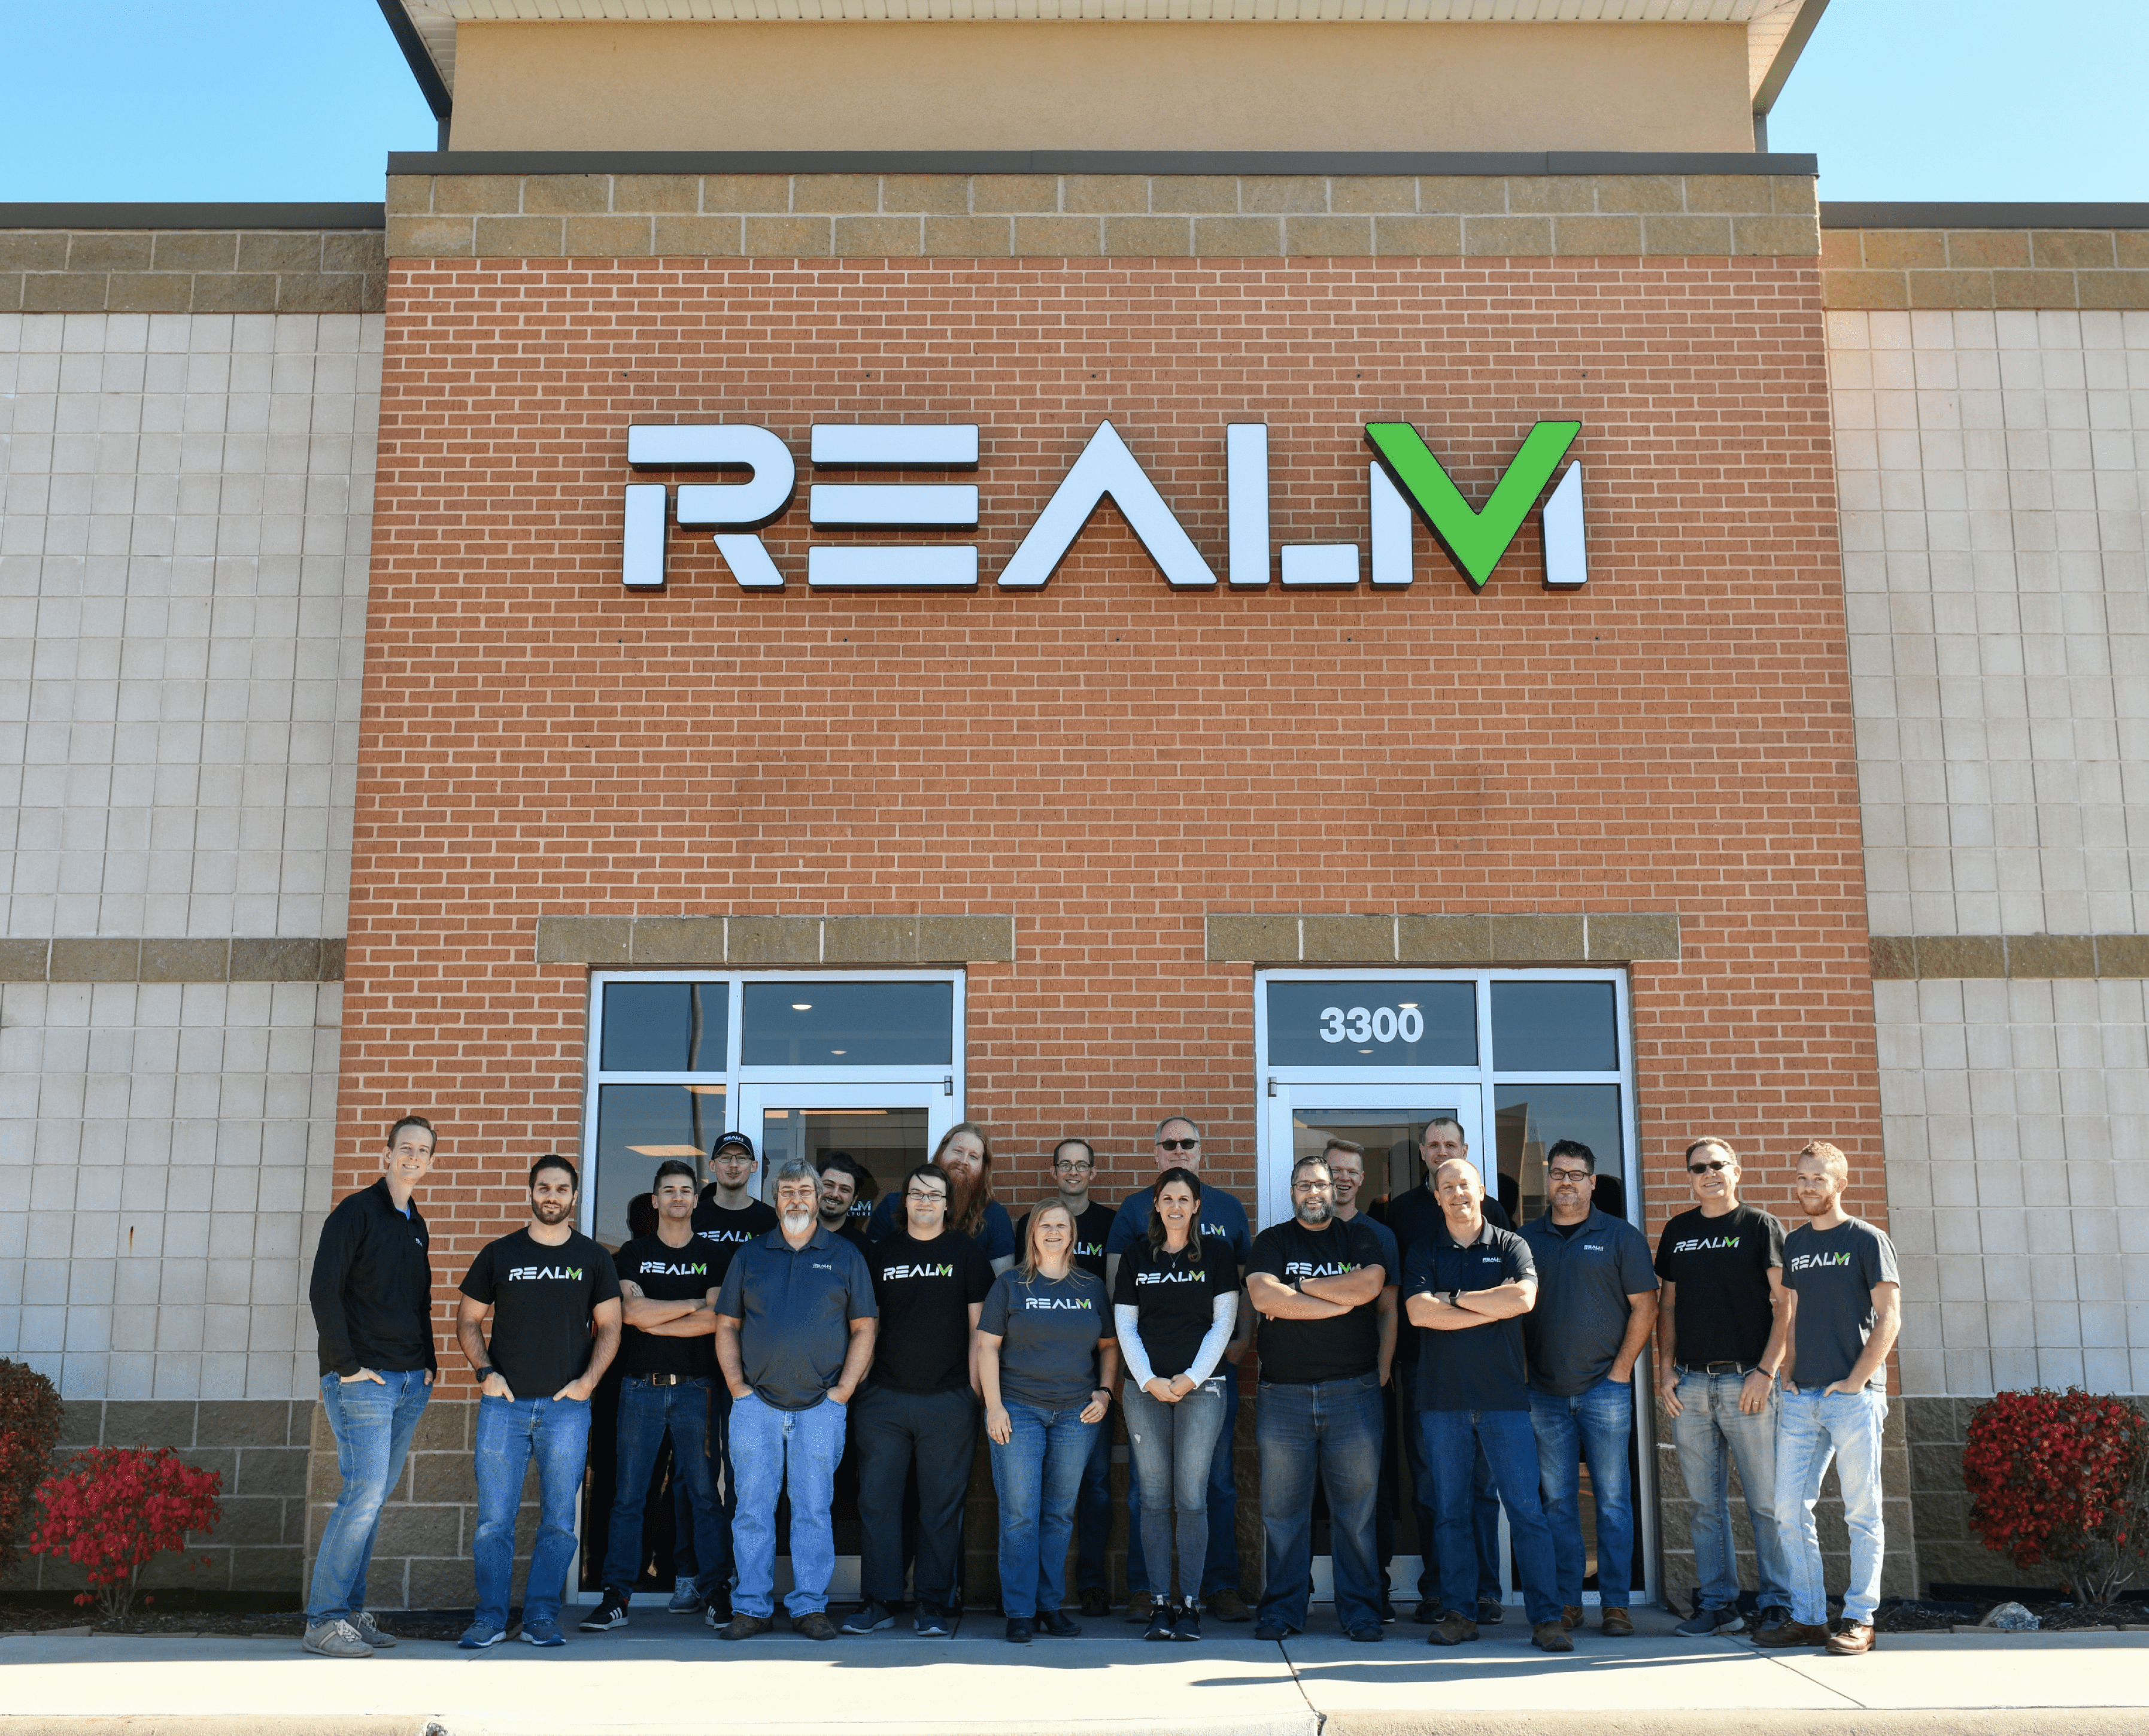 RealmFive team outside the RealmFive building